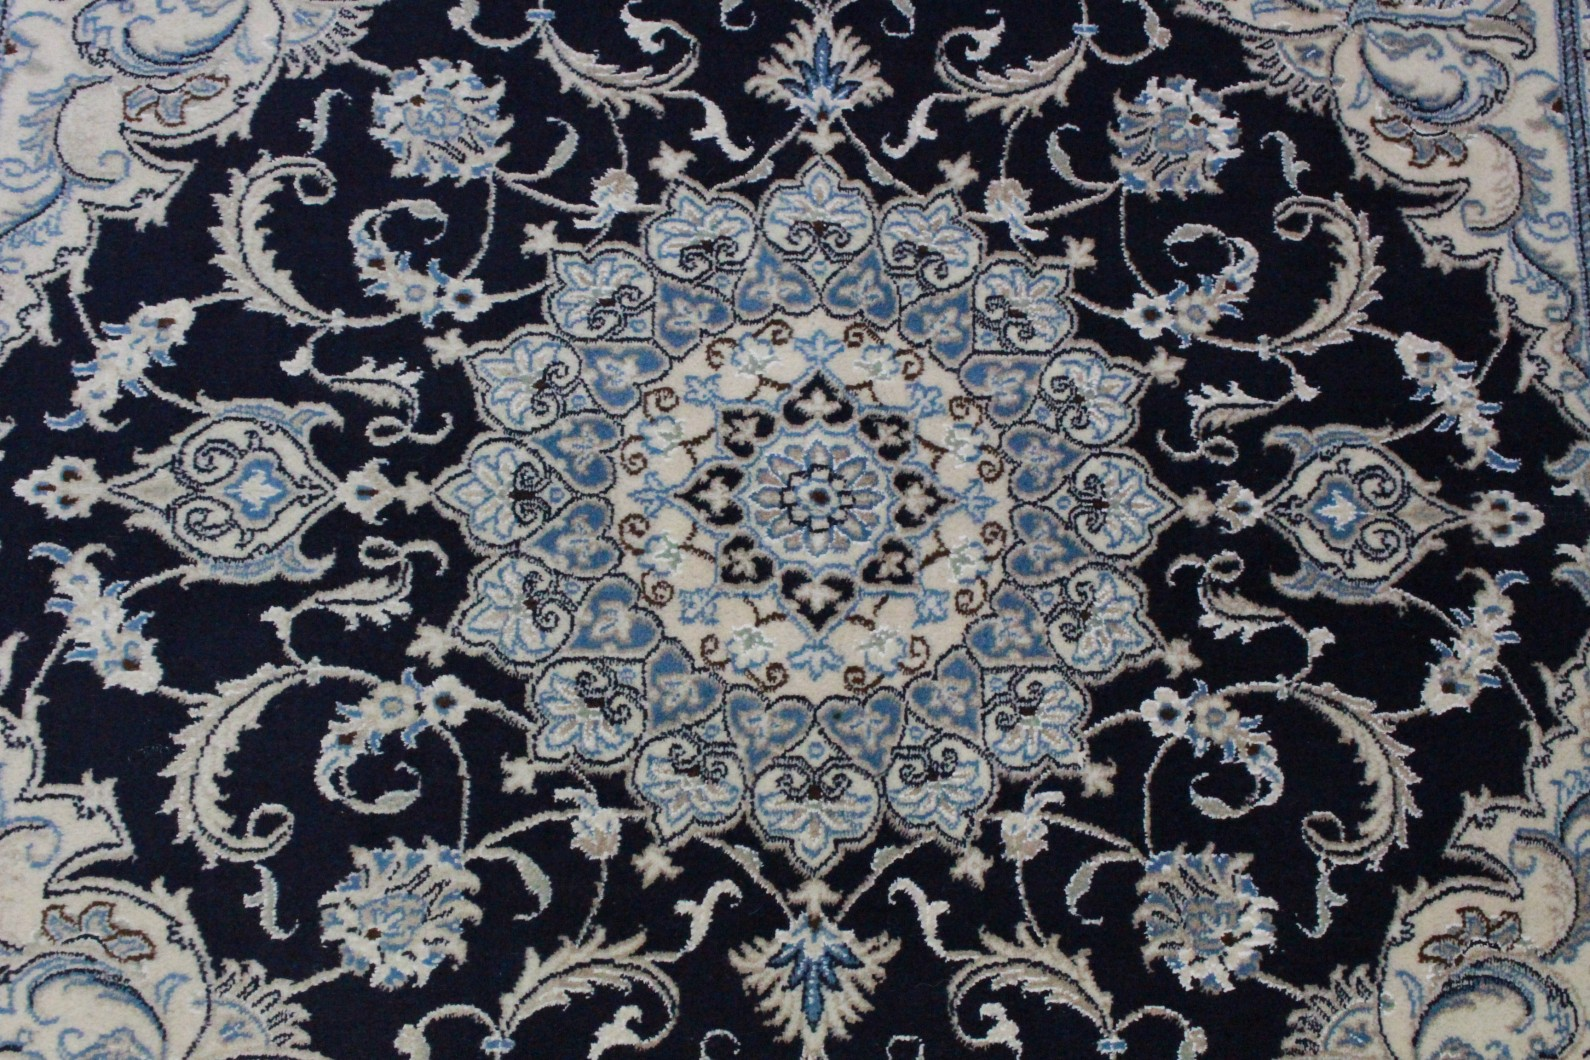 nain teppich beige blau in 210x190 5120 58123 bei kaufen. Black Bedroom Furniture Sets. Home Design Ideas